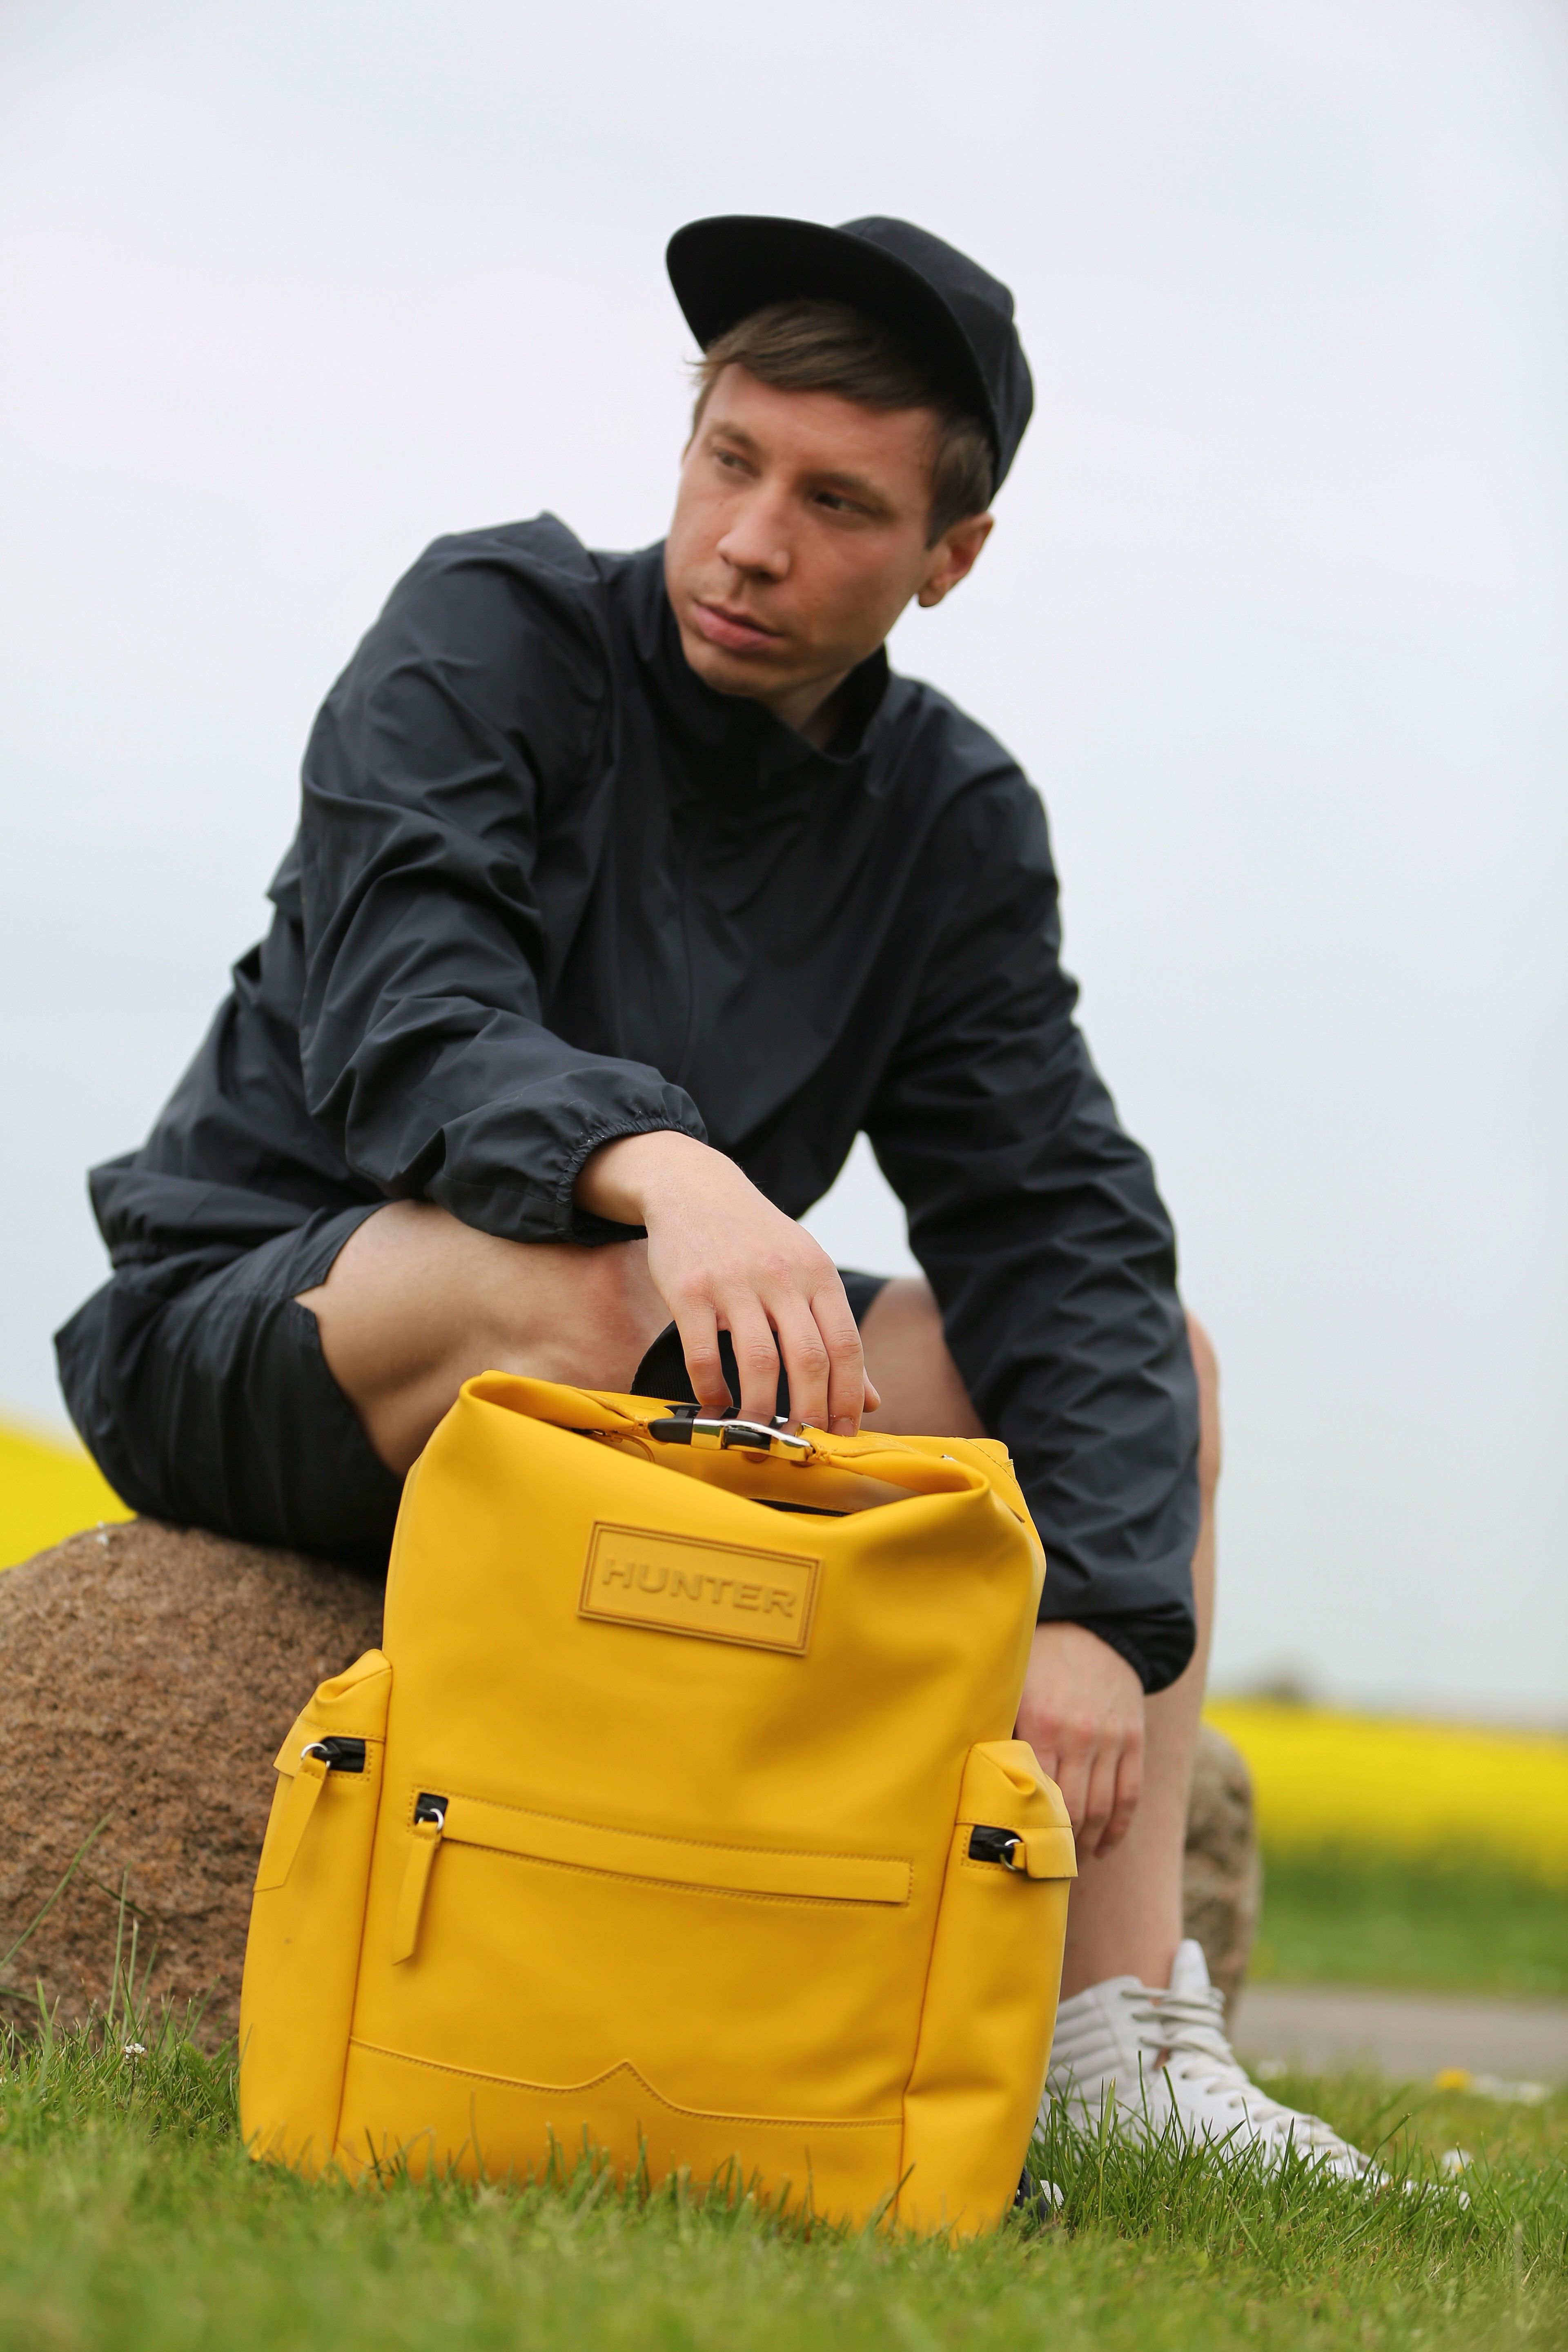 231232cded2e1 Hunter Original Rubberised Leather Backpack in Yellow worn by Thomas  Falkenstedt.